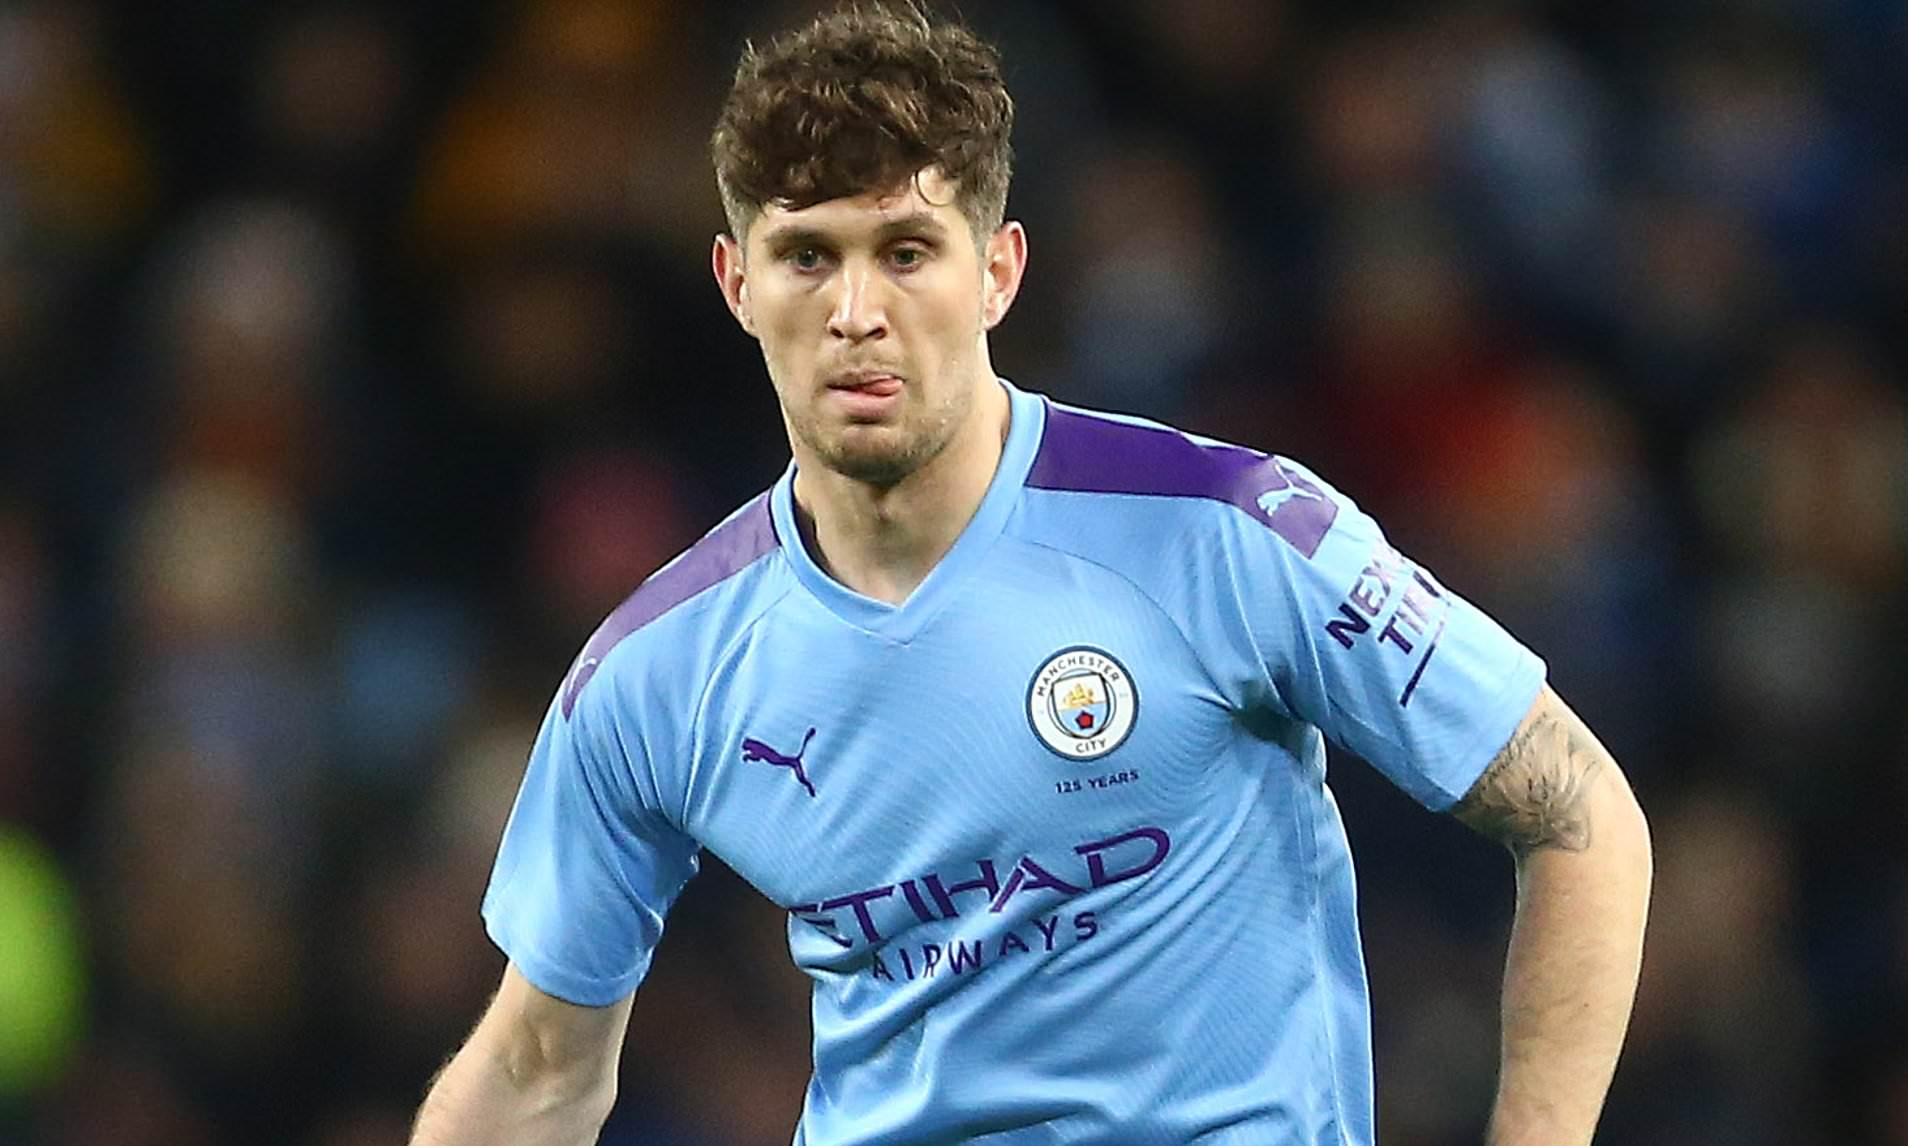 Arteta Considering Loan Move For Man City Defender Stones